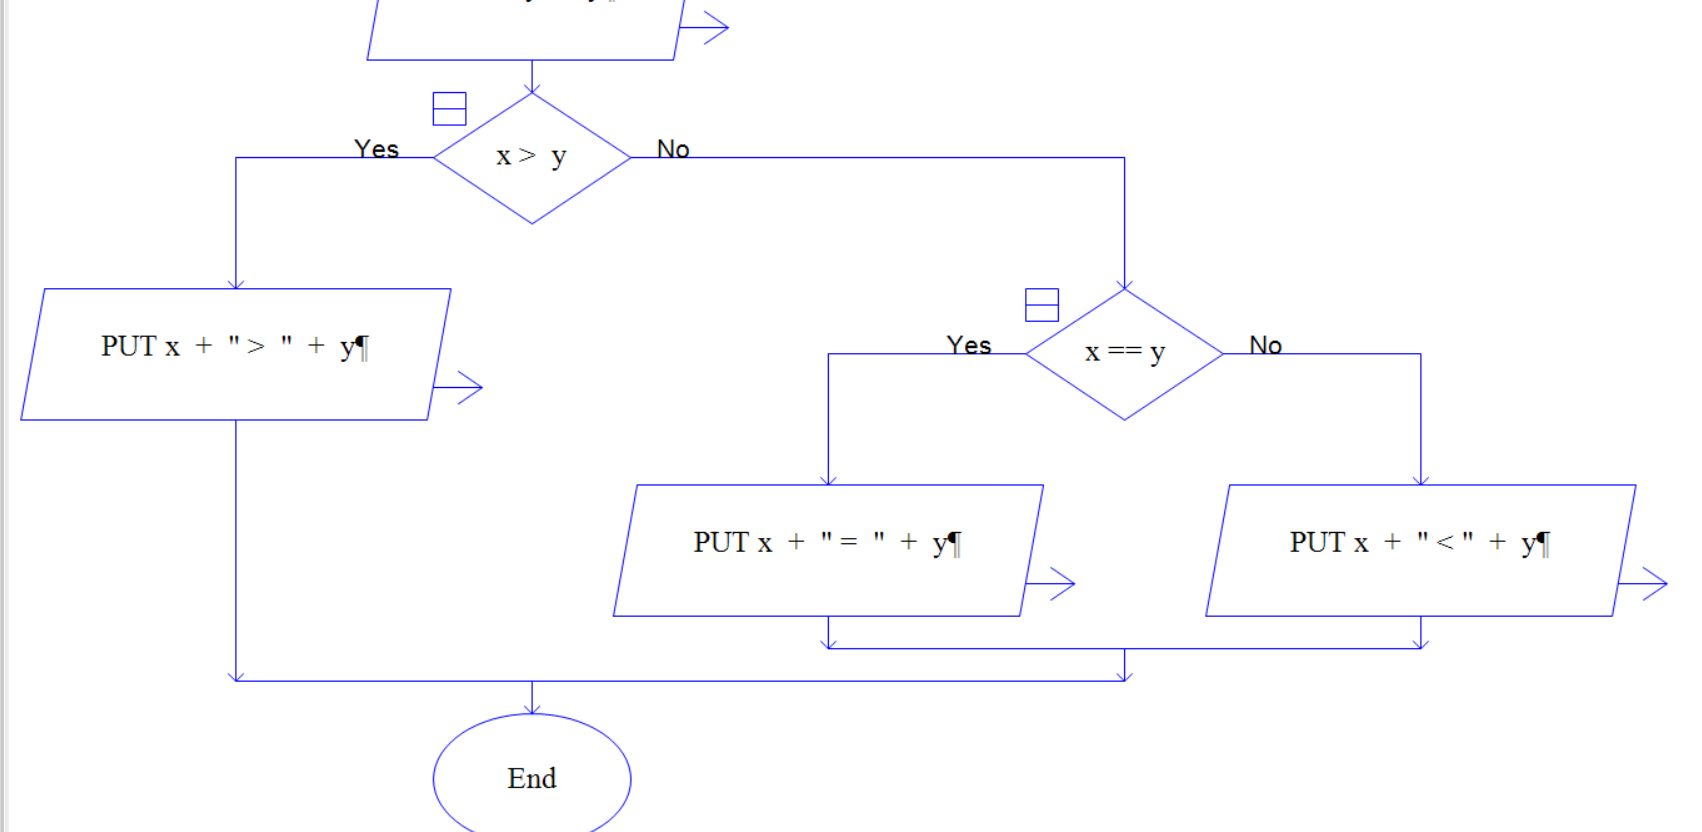 Selection Symbol in Flowchart